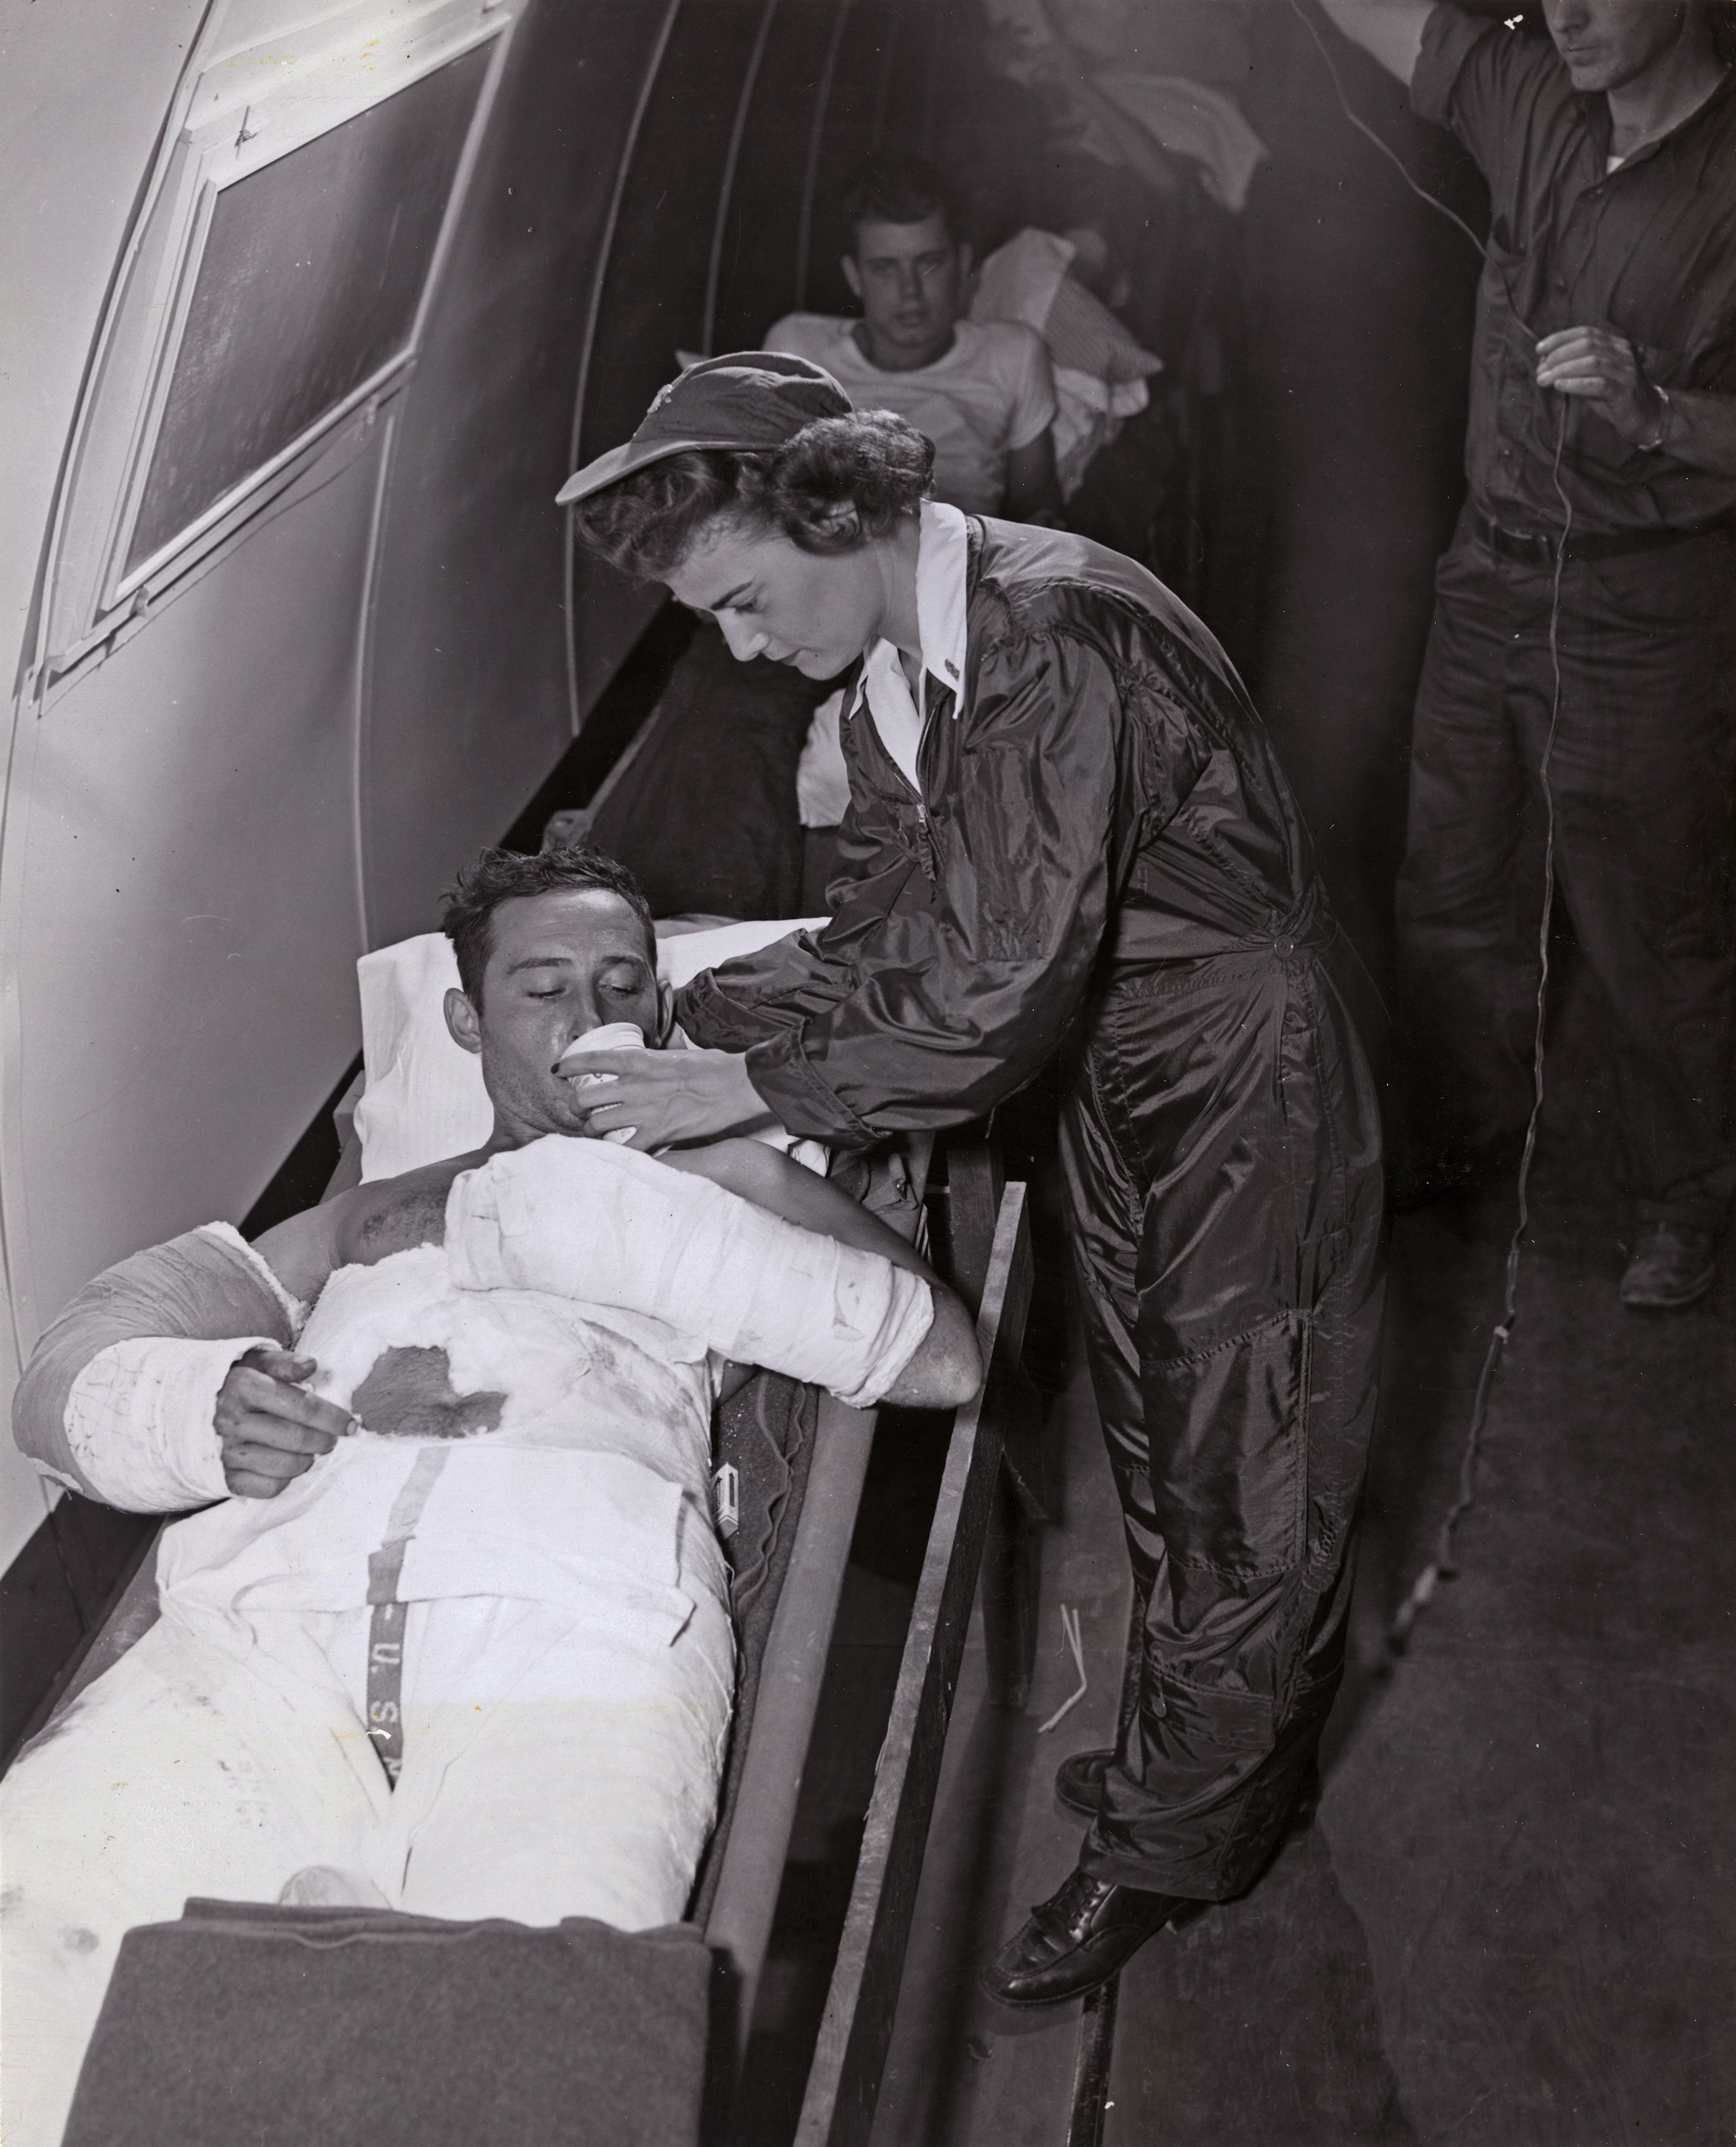 Navy Flight Nurse Tends to Patient Aboard Plane